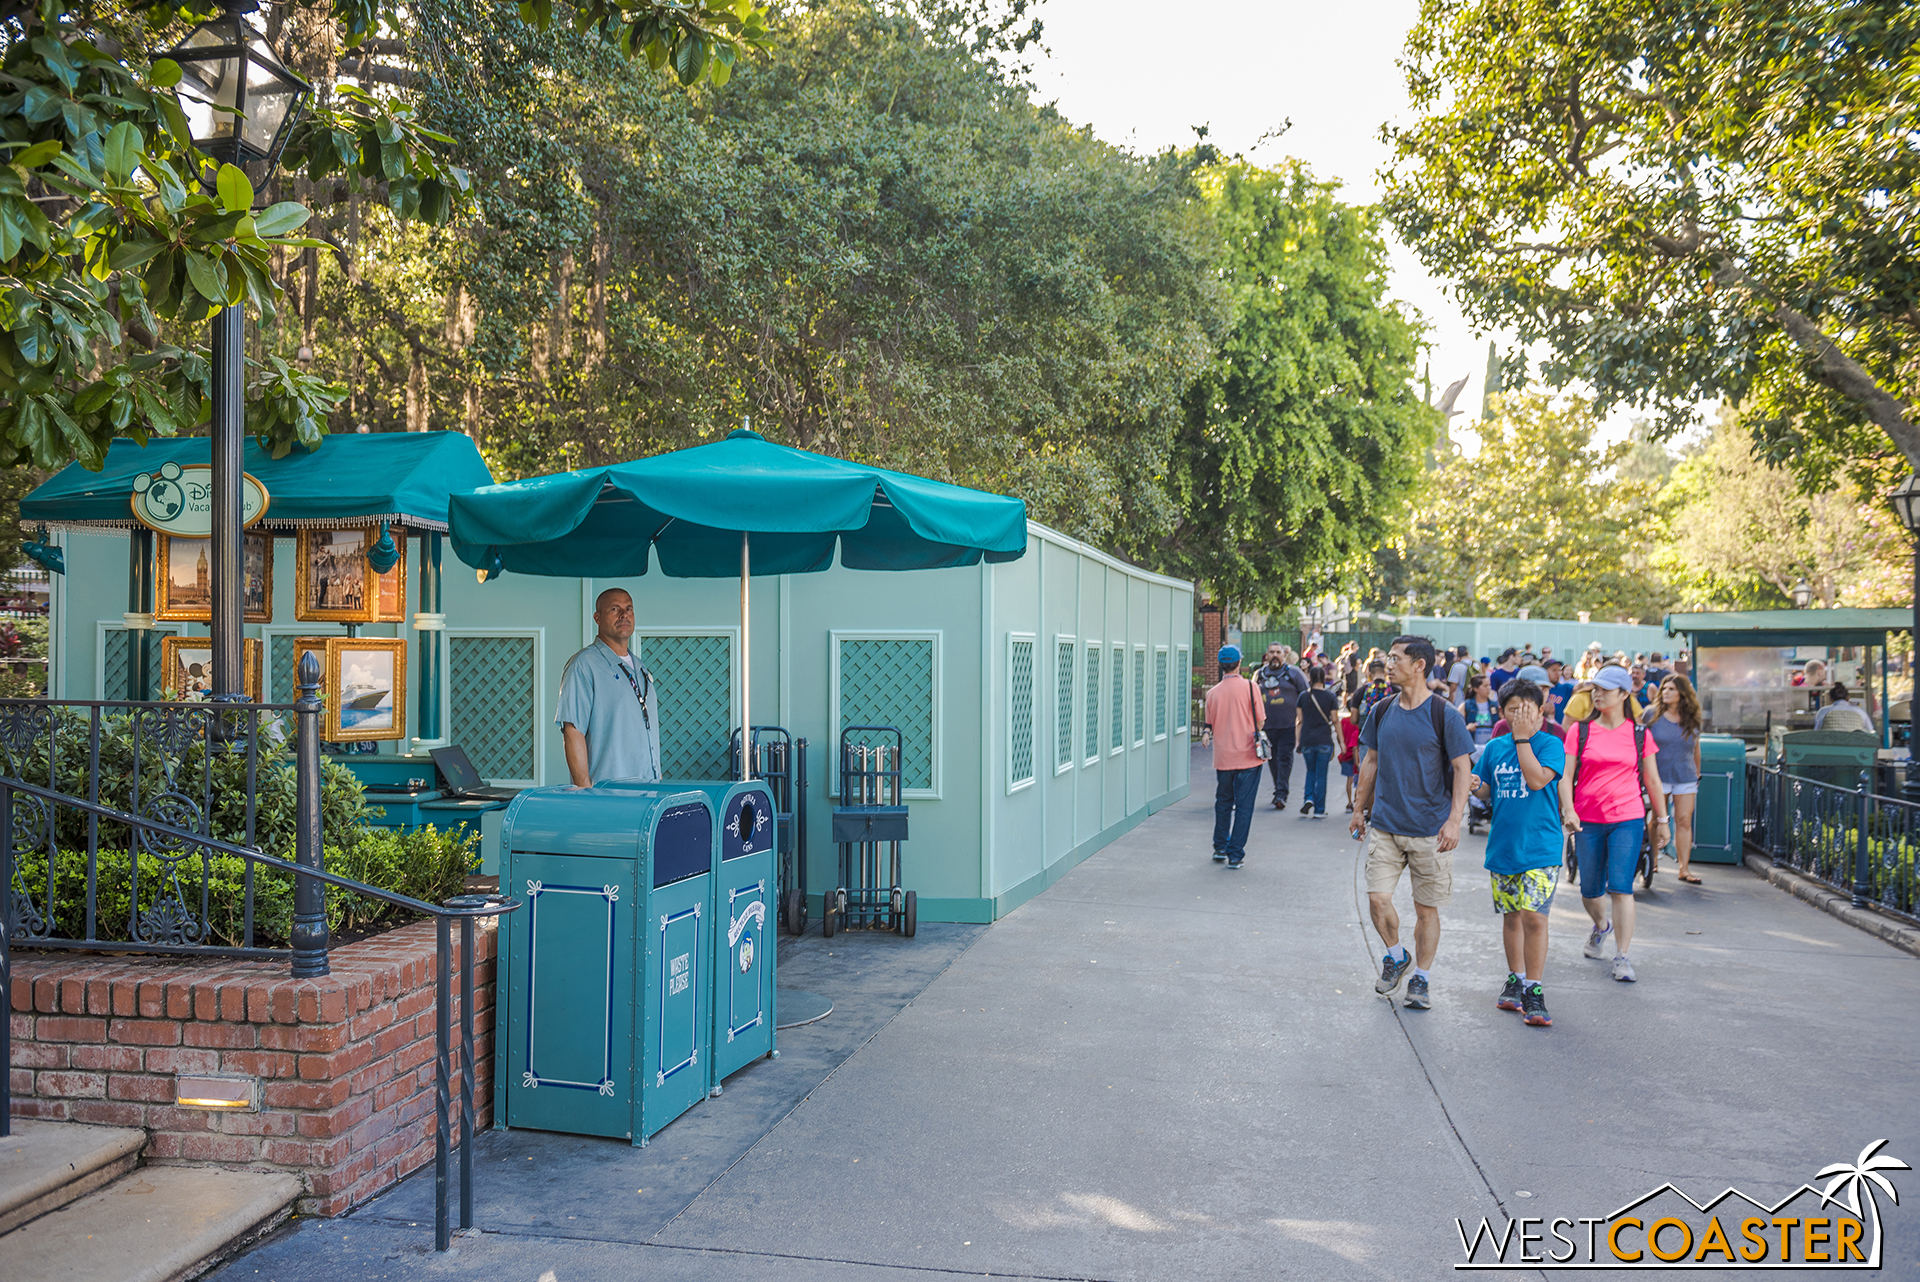 Planters under refurbishment in the foreground.  Haunted Mansion under refurbishment in the background.